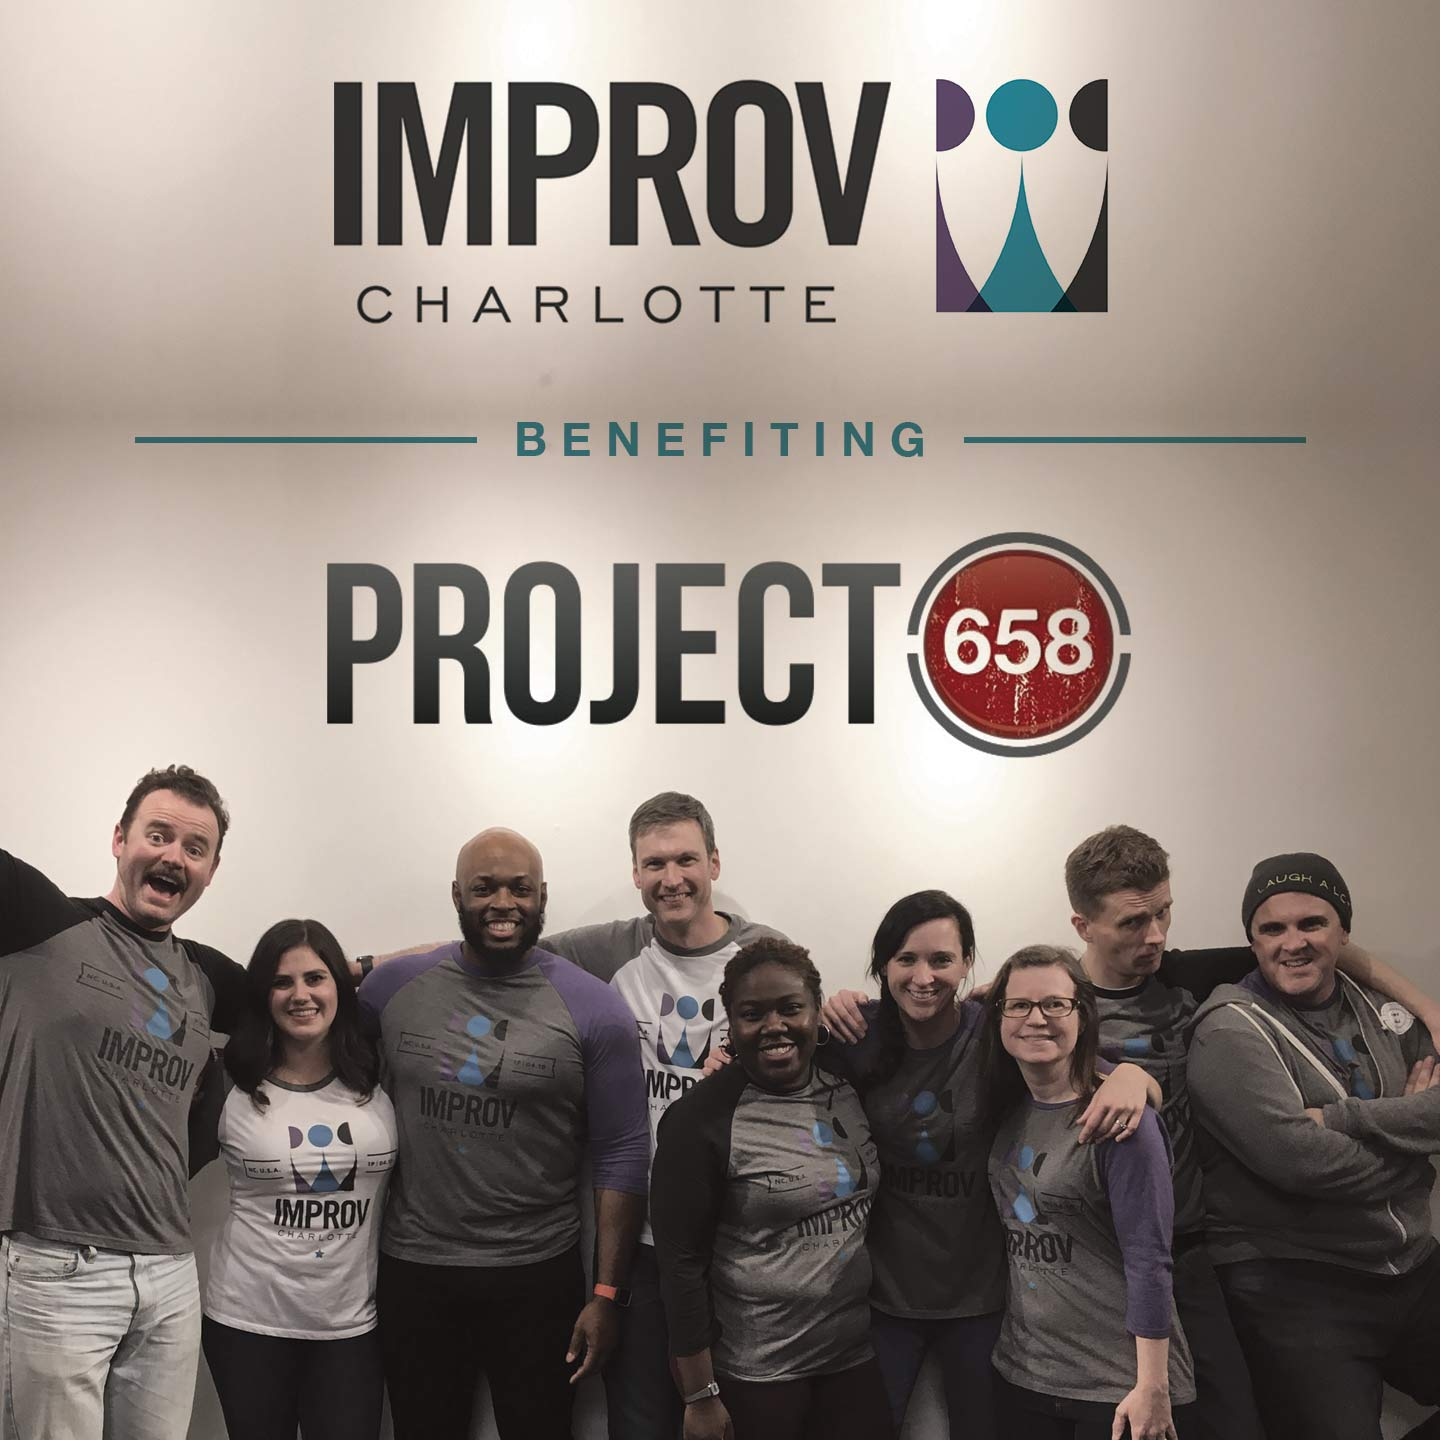 A Night of Improv Comedy to Benefit Project 658